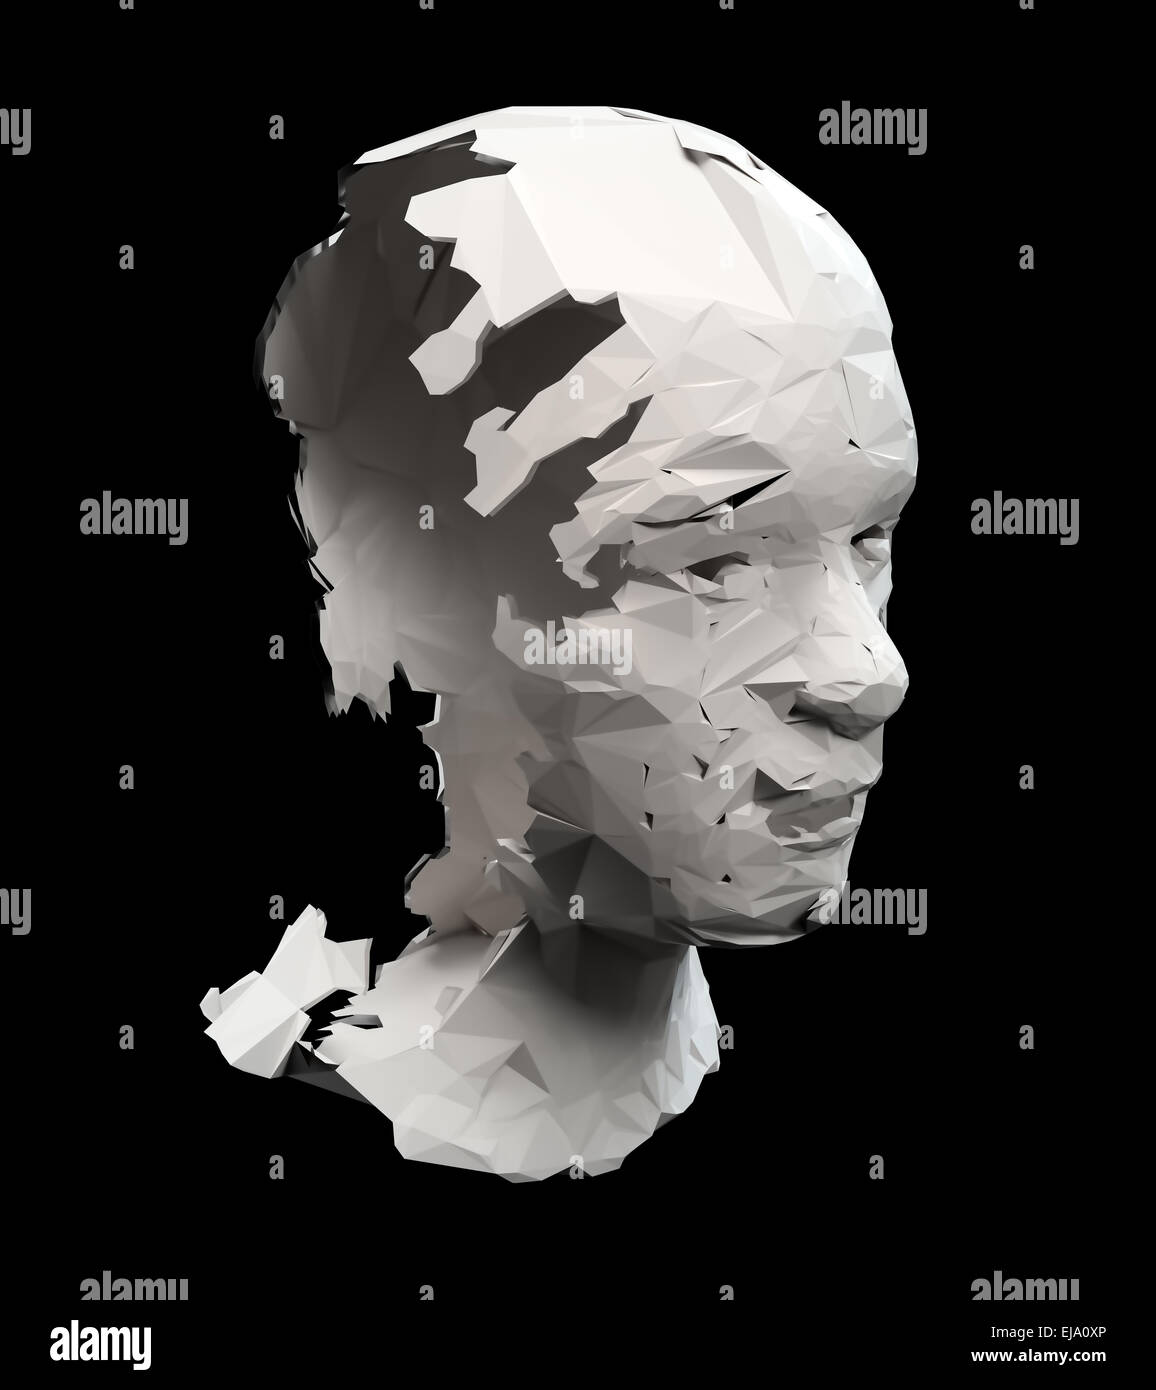 Broken head scultpure - depression concept illustration - Stock Image